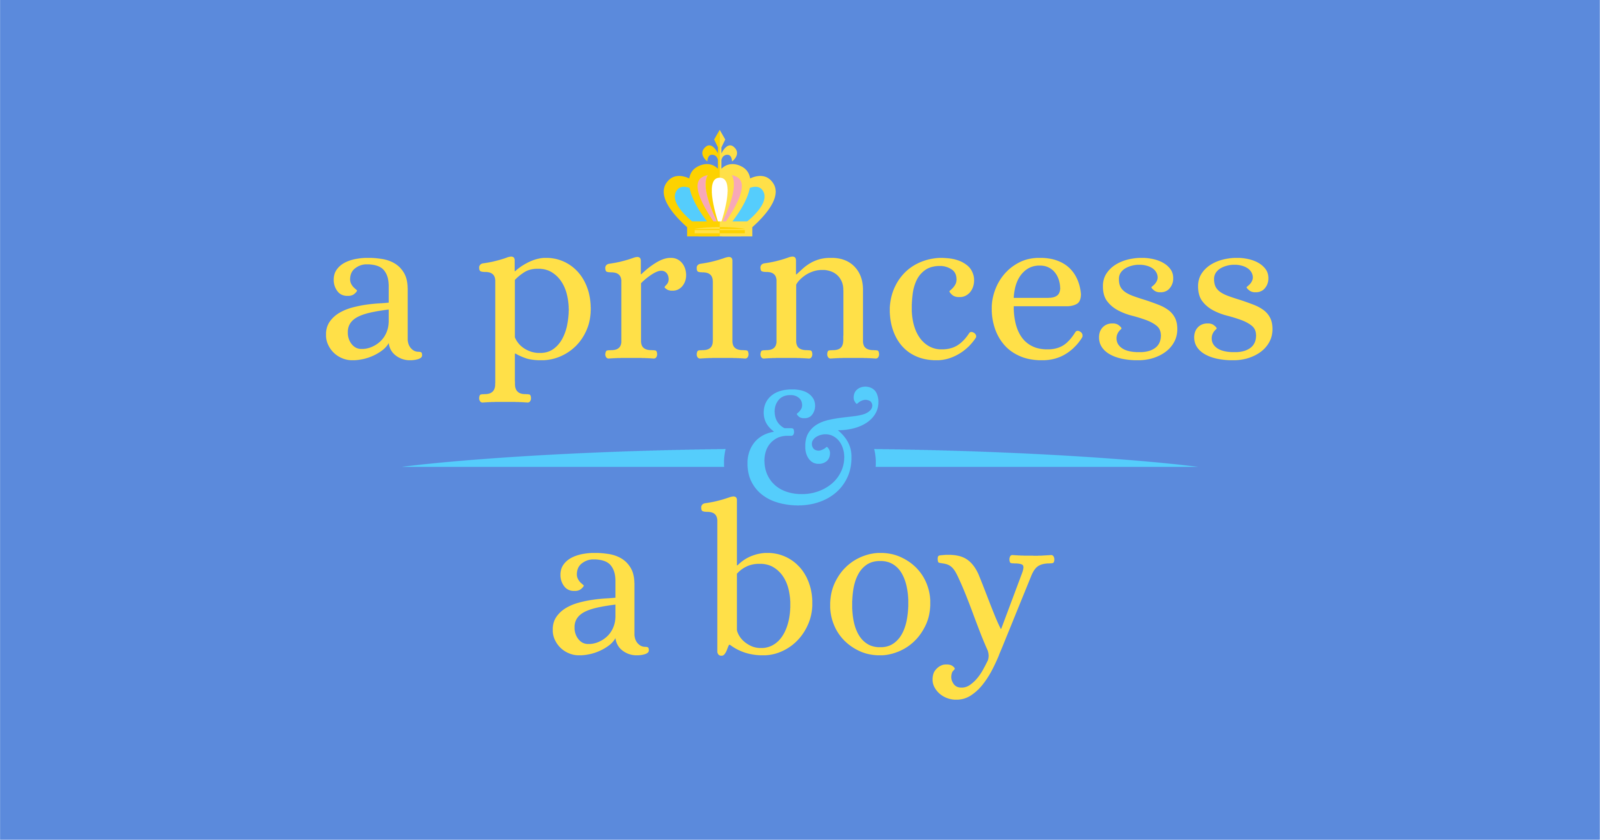 A Princess and a Boy by Stacey Lehane